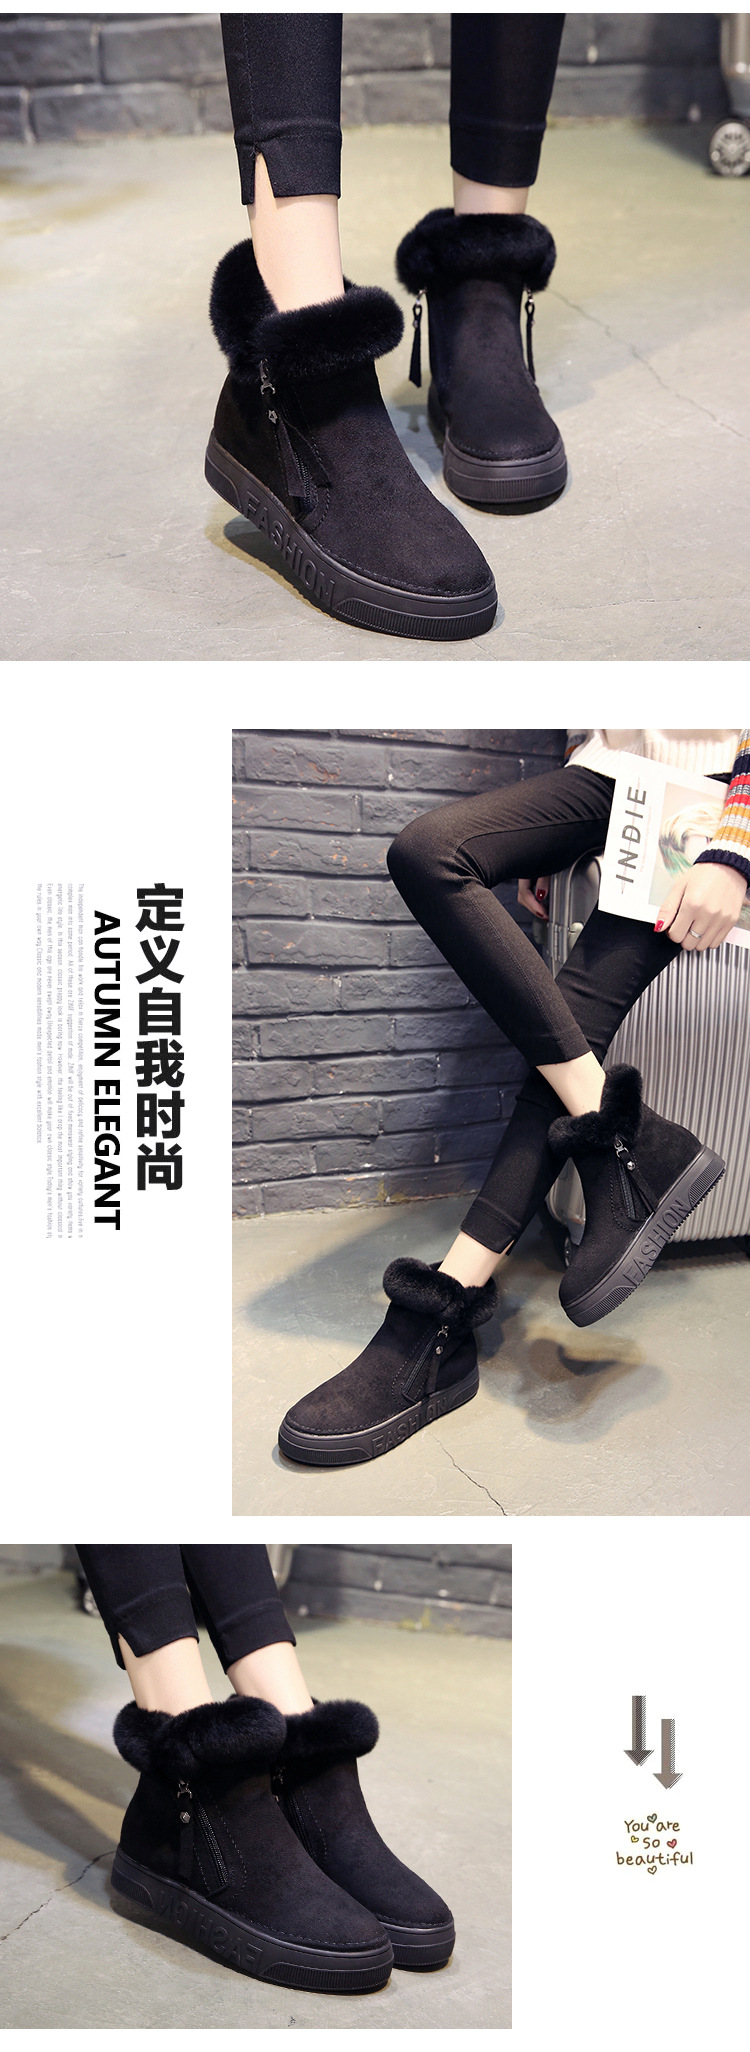 Women Short Ankle Boots Winter Plush Warm Thick Bottom Platform Round Toe Students Leisure Flat Ankle Snow Boots Botas Mujer 51